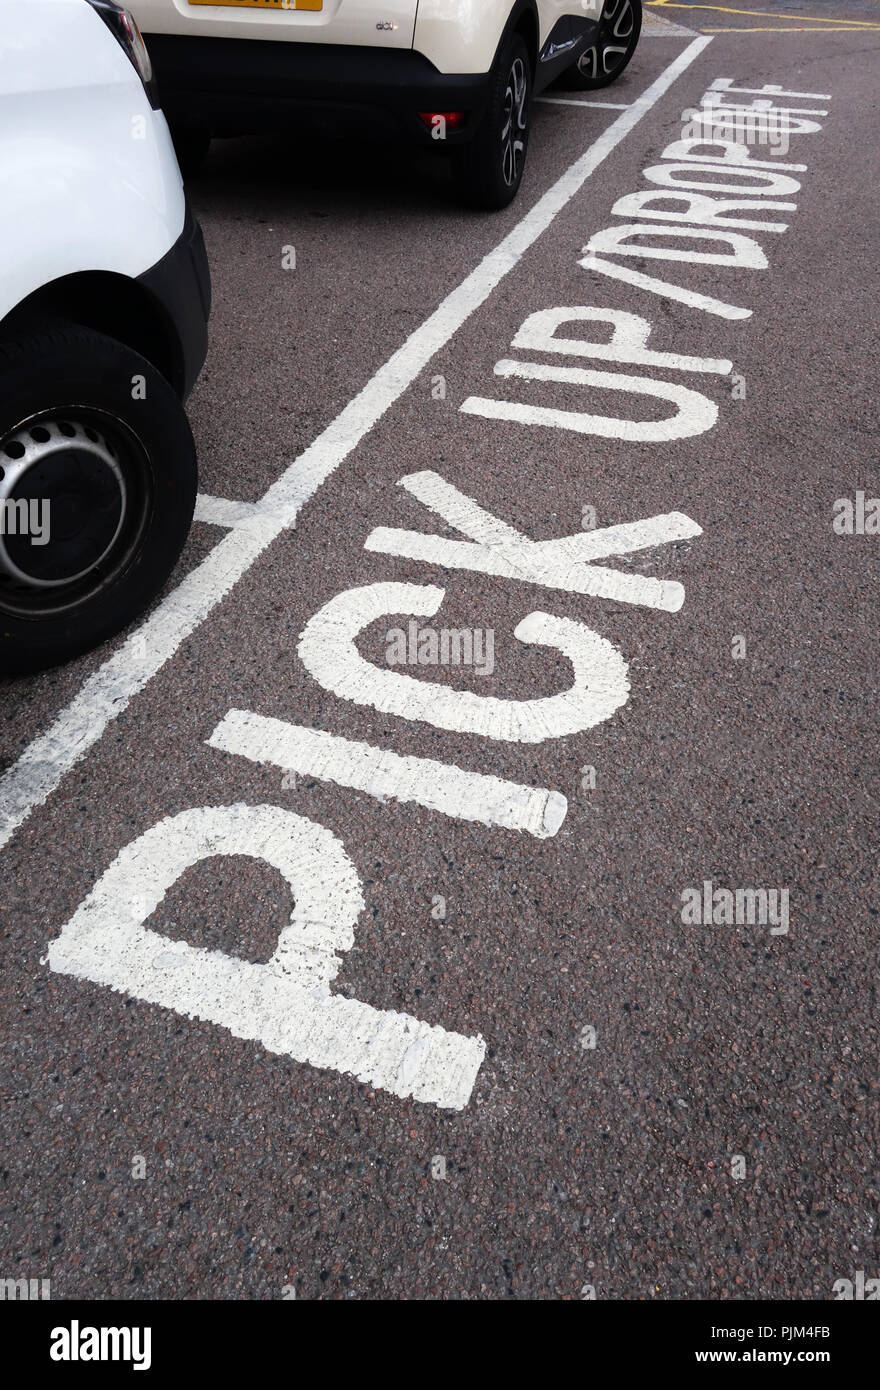 Pick up - drop off wording written on a road surface in the car park in Doncaster - Stock Image